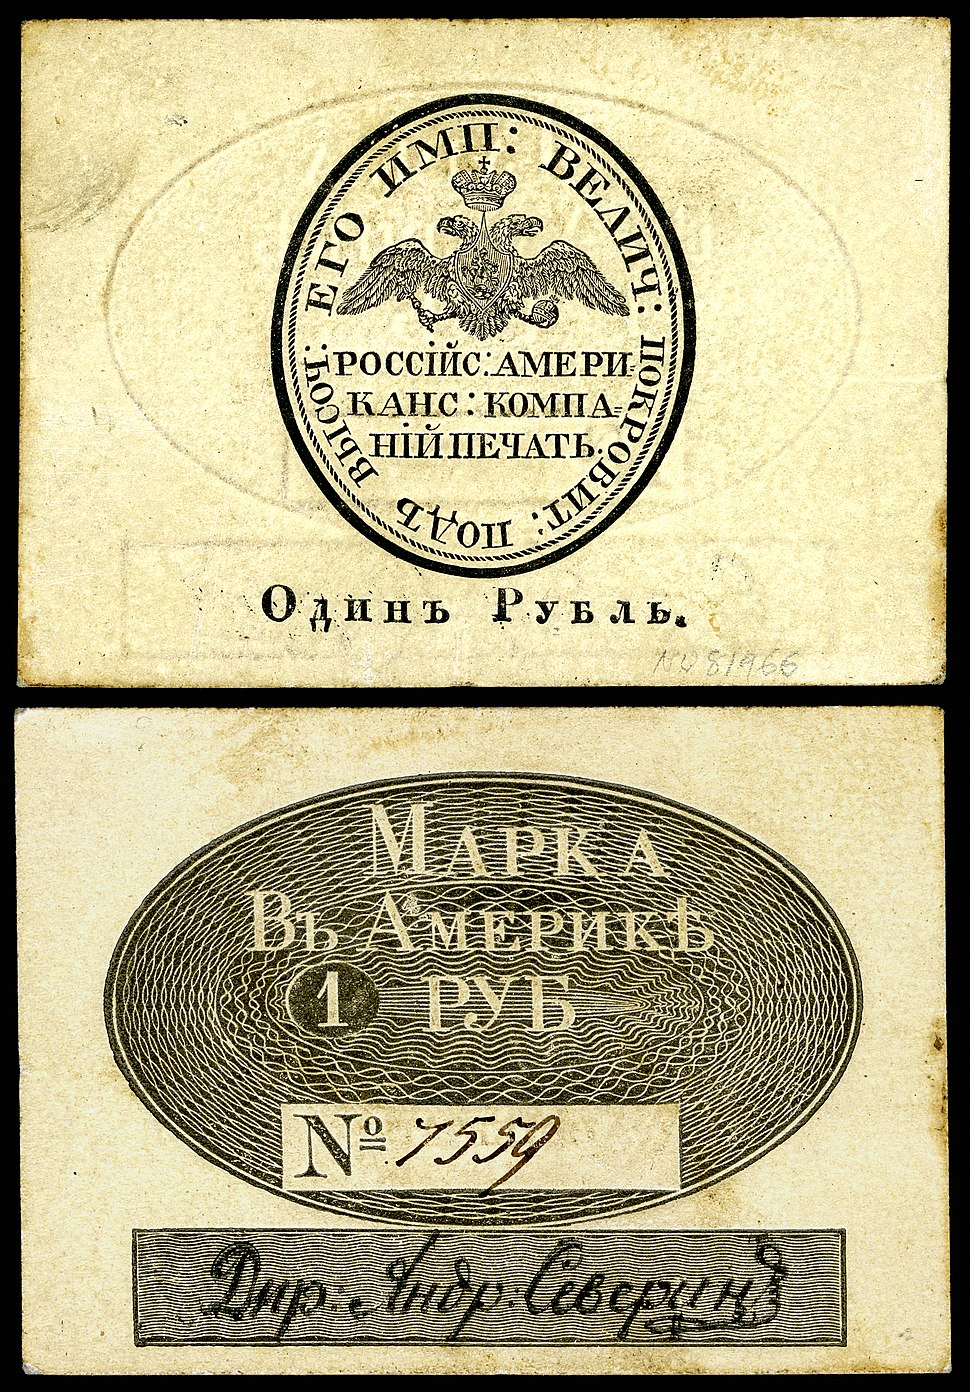 Russian-American Co - 1 Ruble (7559)